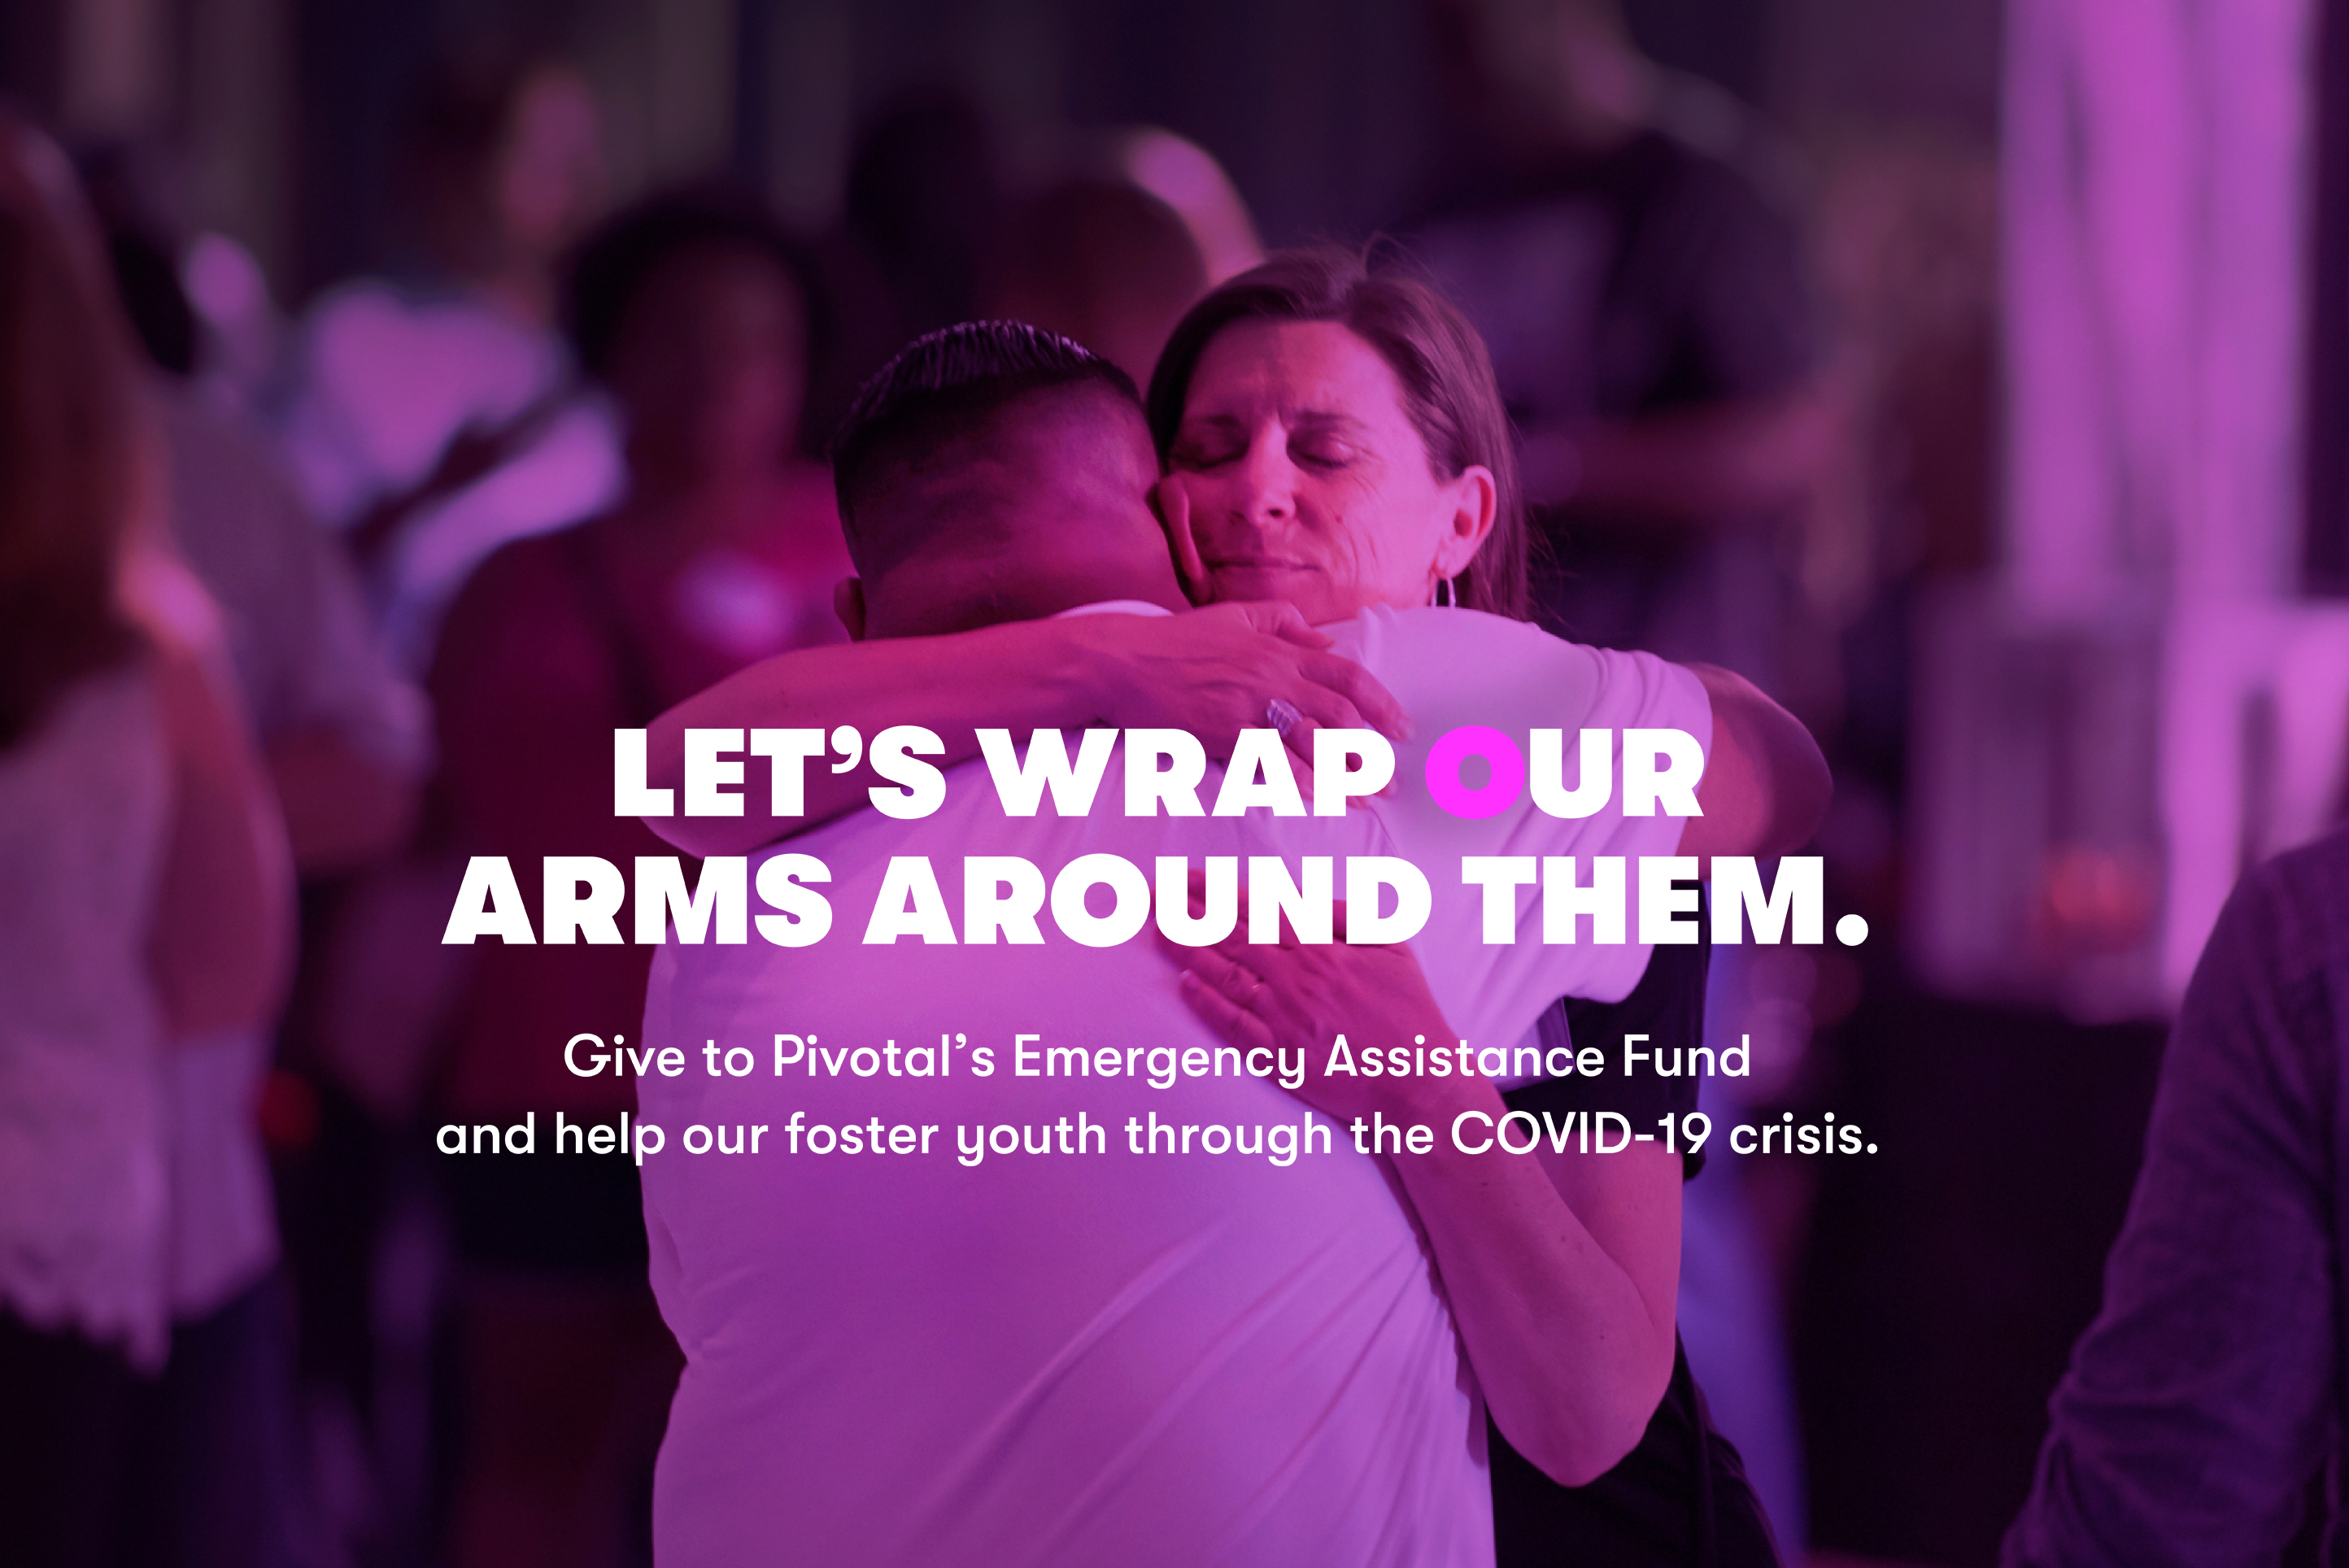 lets-wrap-our-arms-around-them-BG